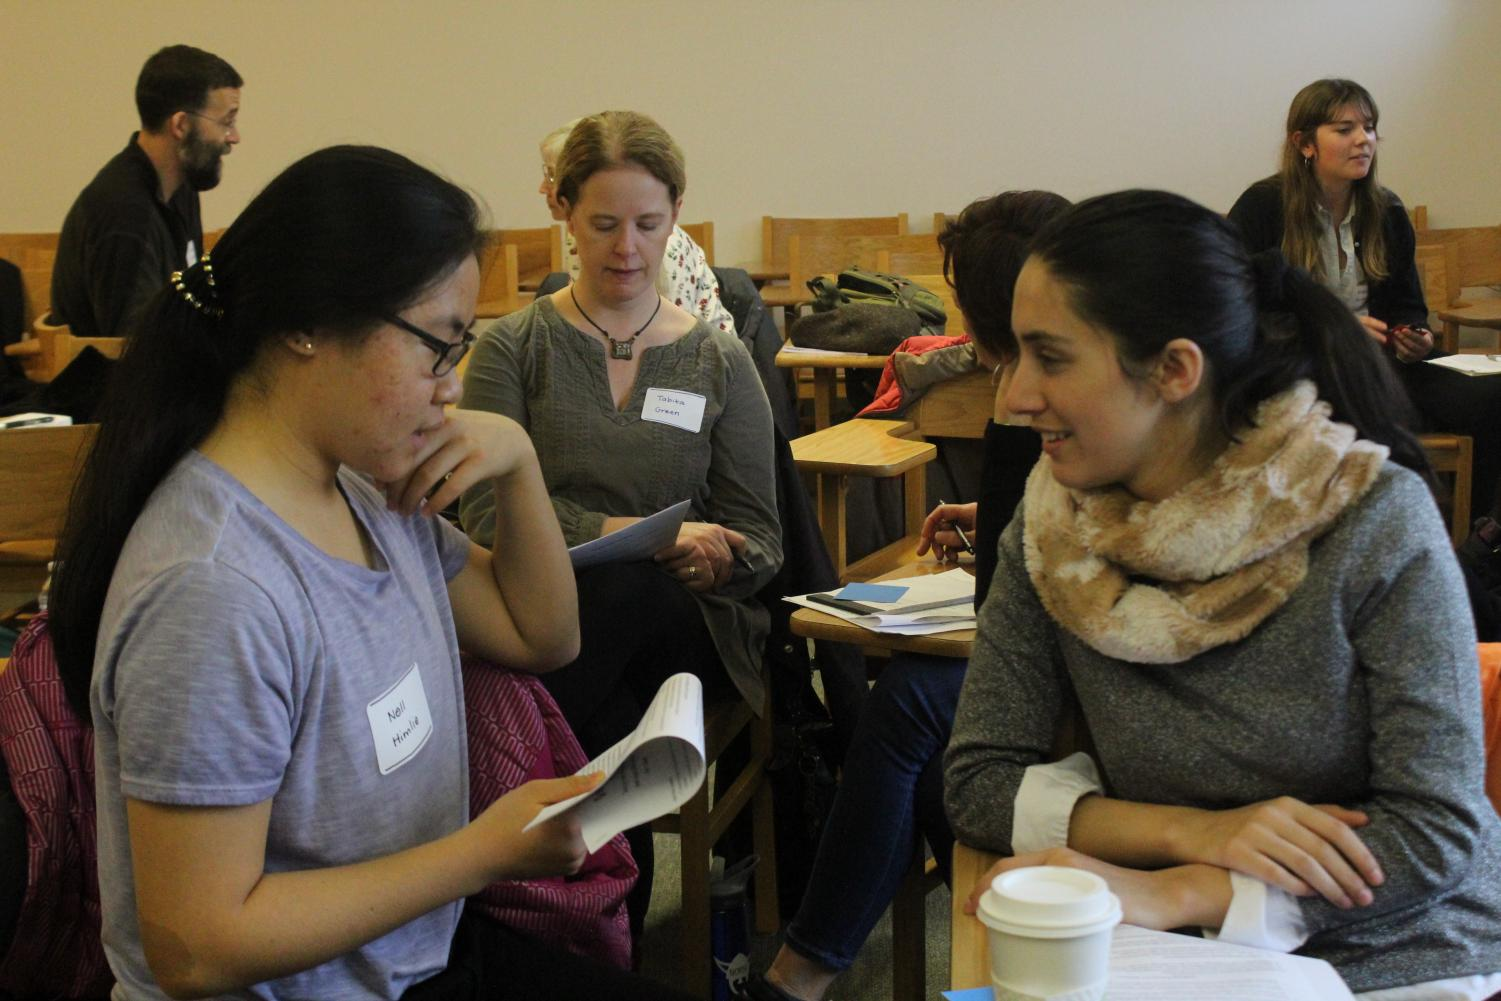 Noor Bibi ('21) and Nell Himlie ('21) engage in a discussion during the Better Angels Workshop on Saturday, Dec. 1.